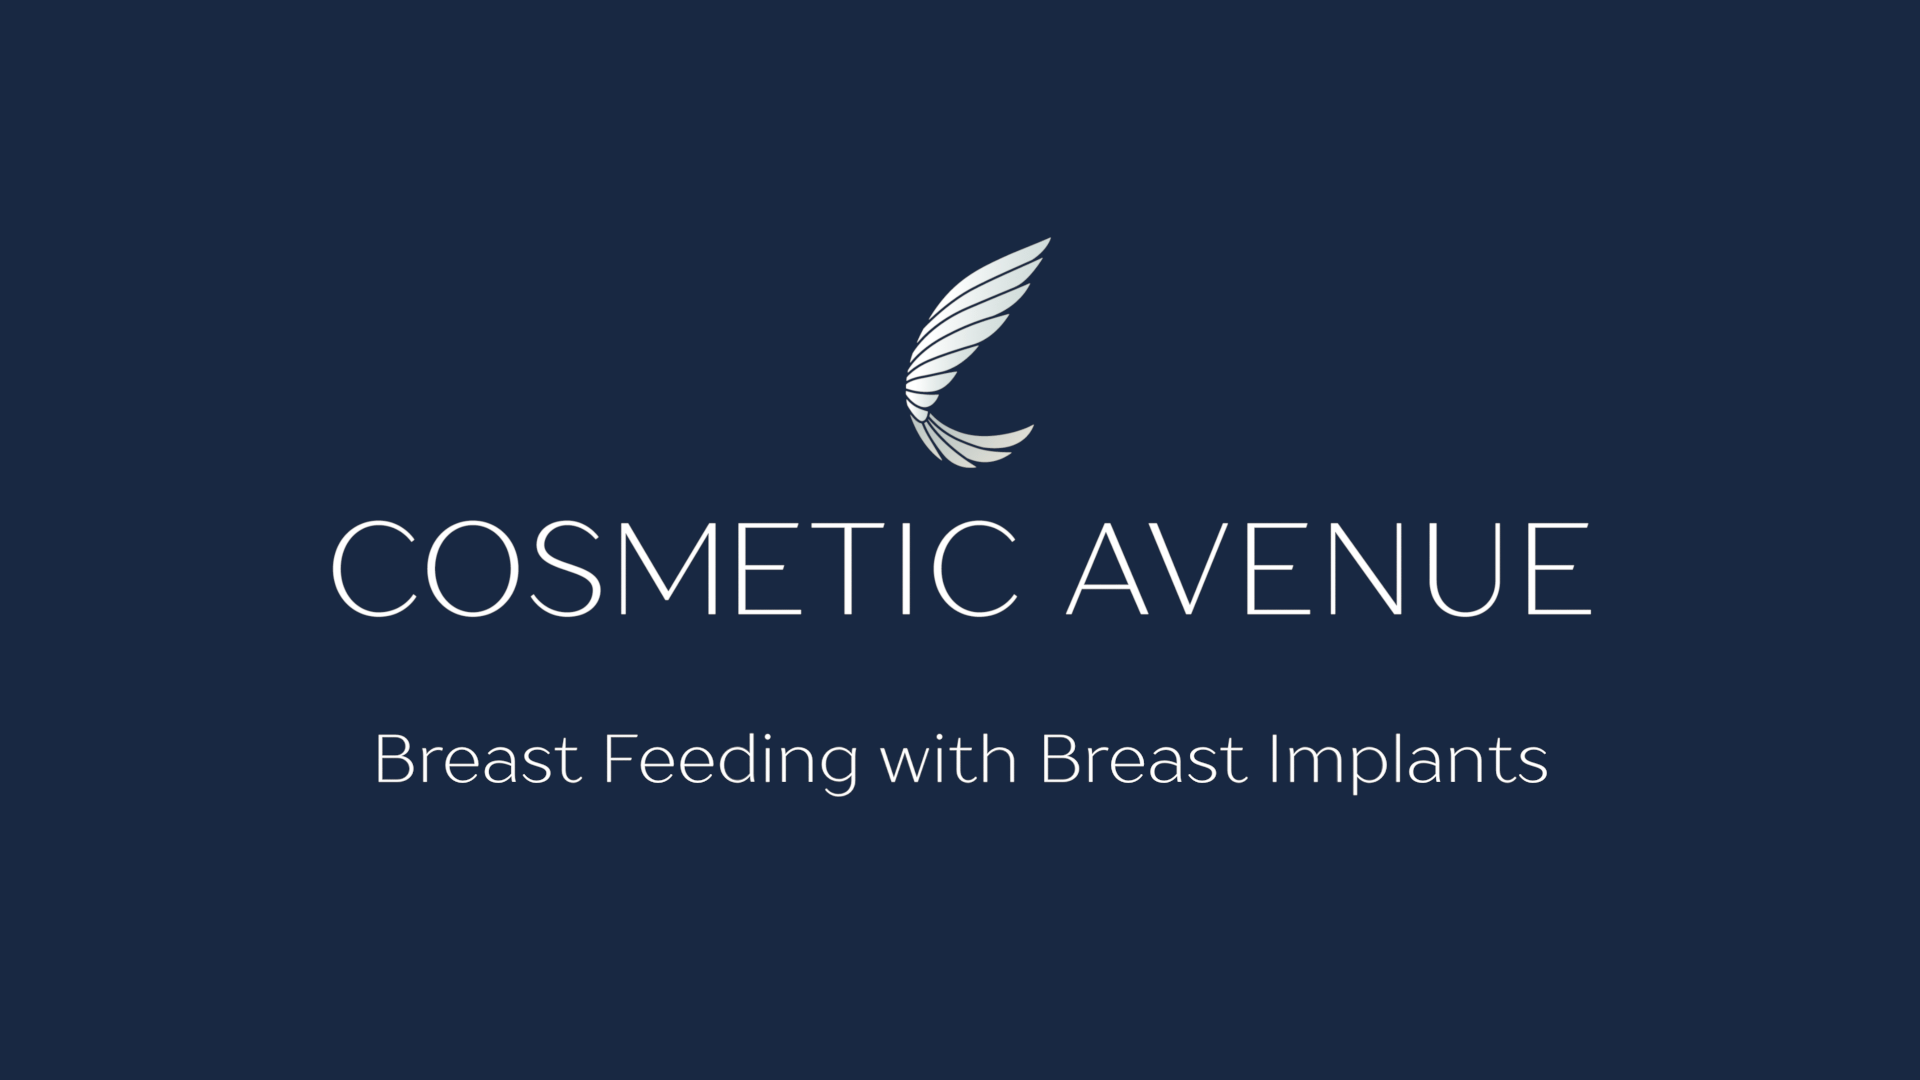 Breast-Feeding-with-Breast-Implants